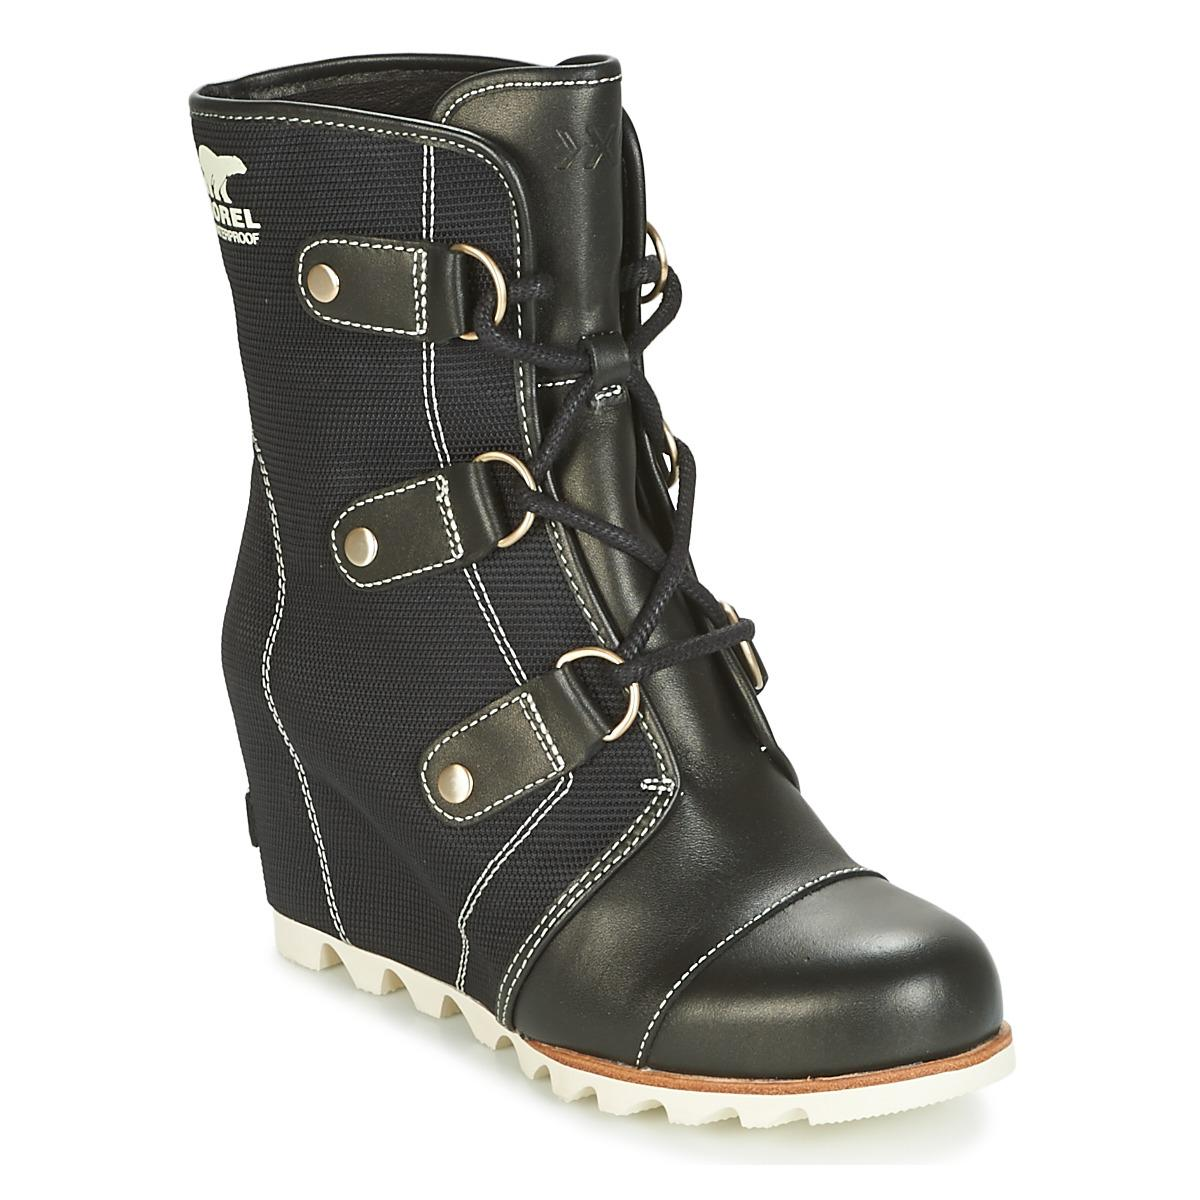 21118794a5df Sorel. Joan Of Arctic Wedge Mid X Celebration Women s Snow Boots In Black